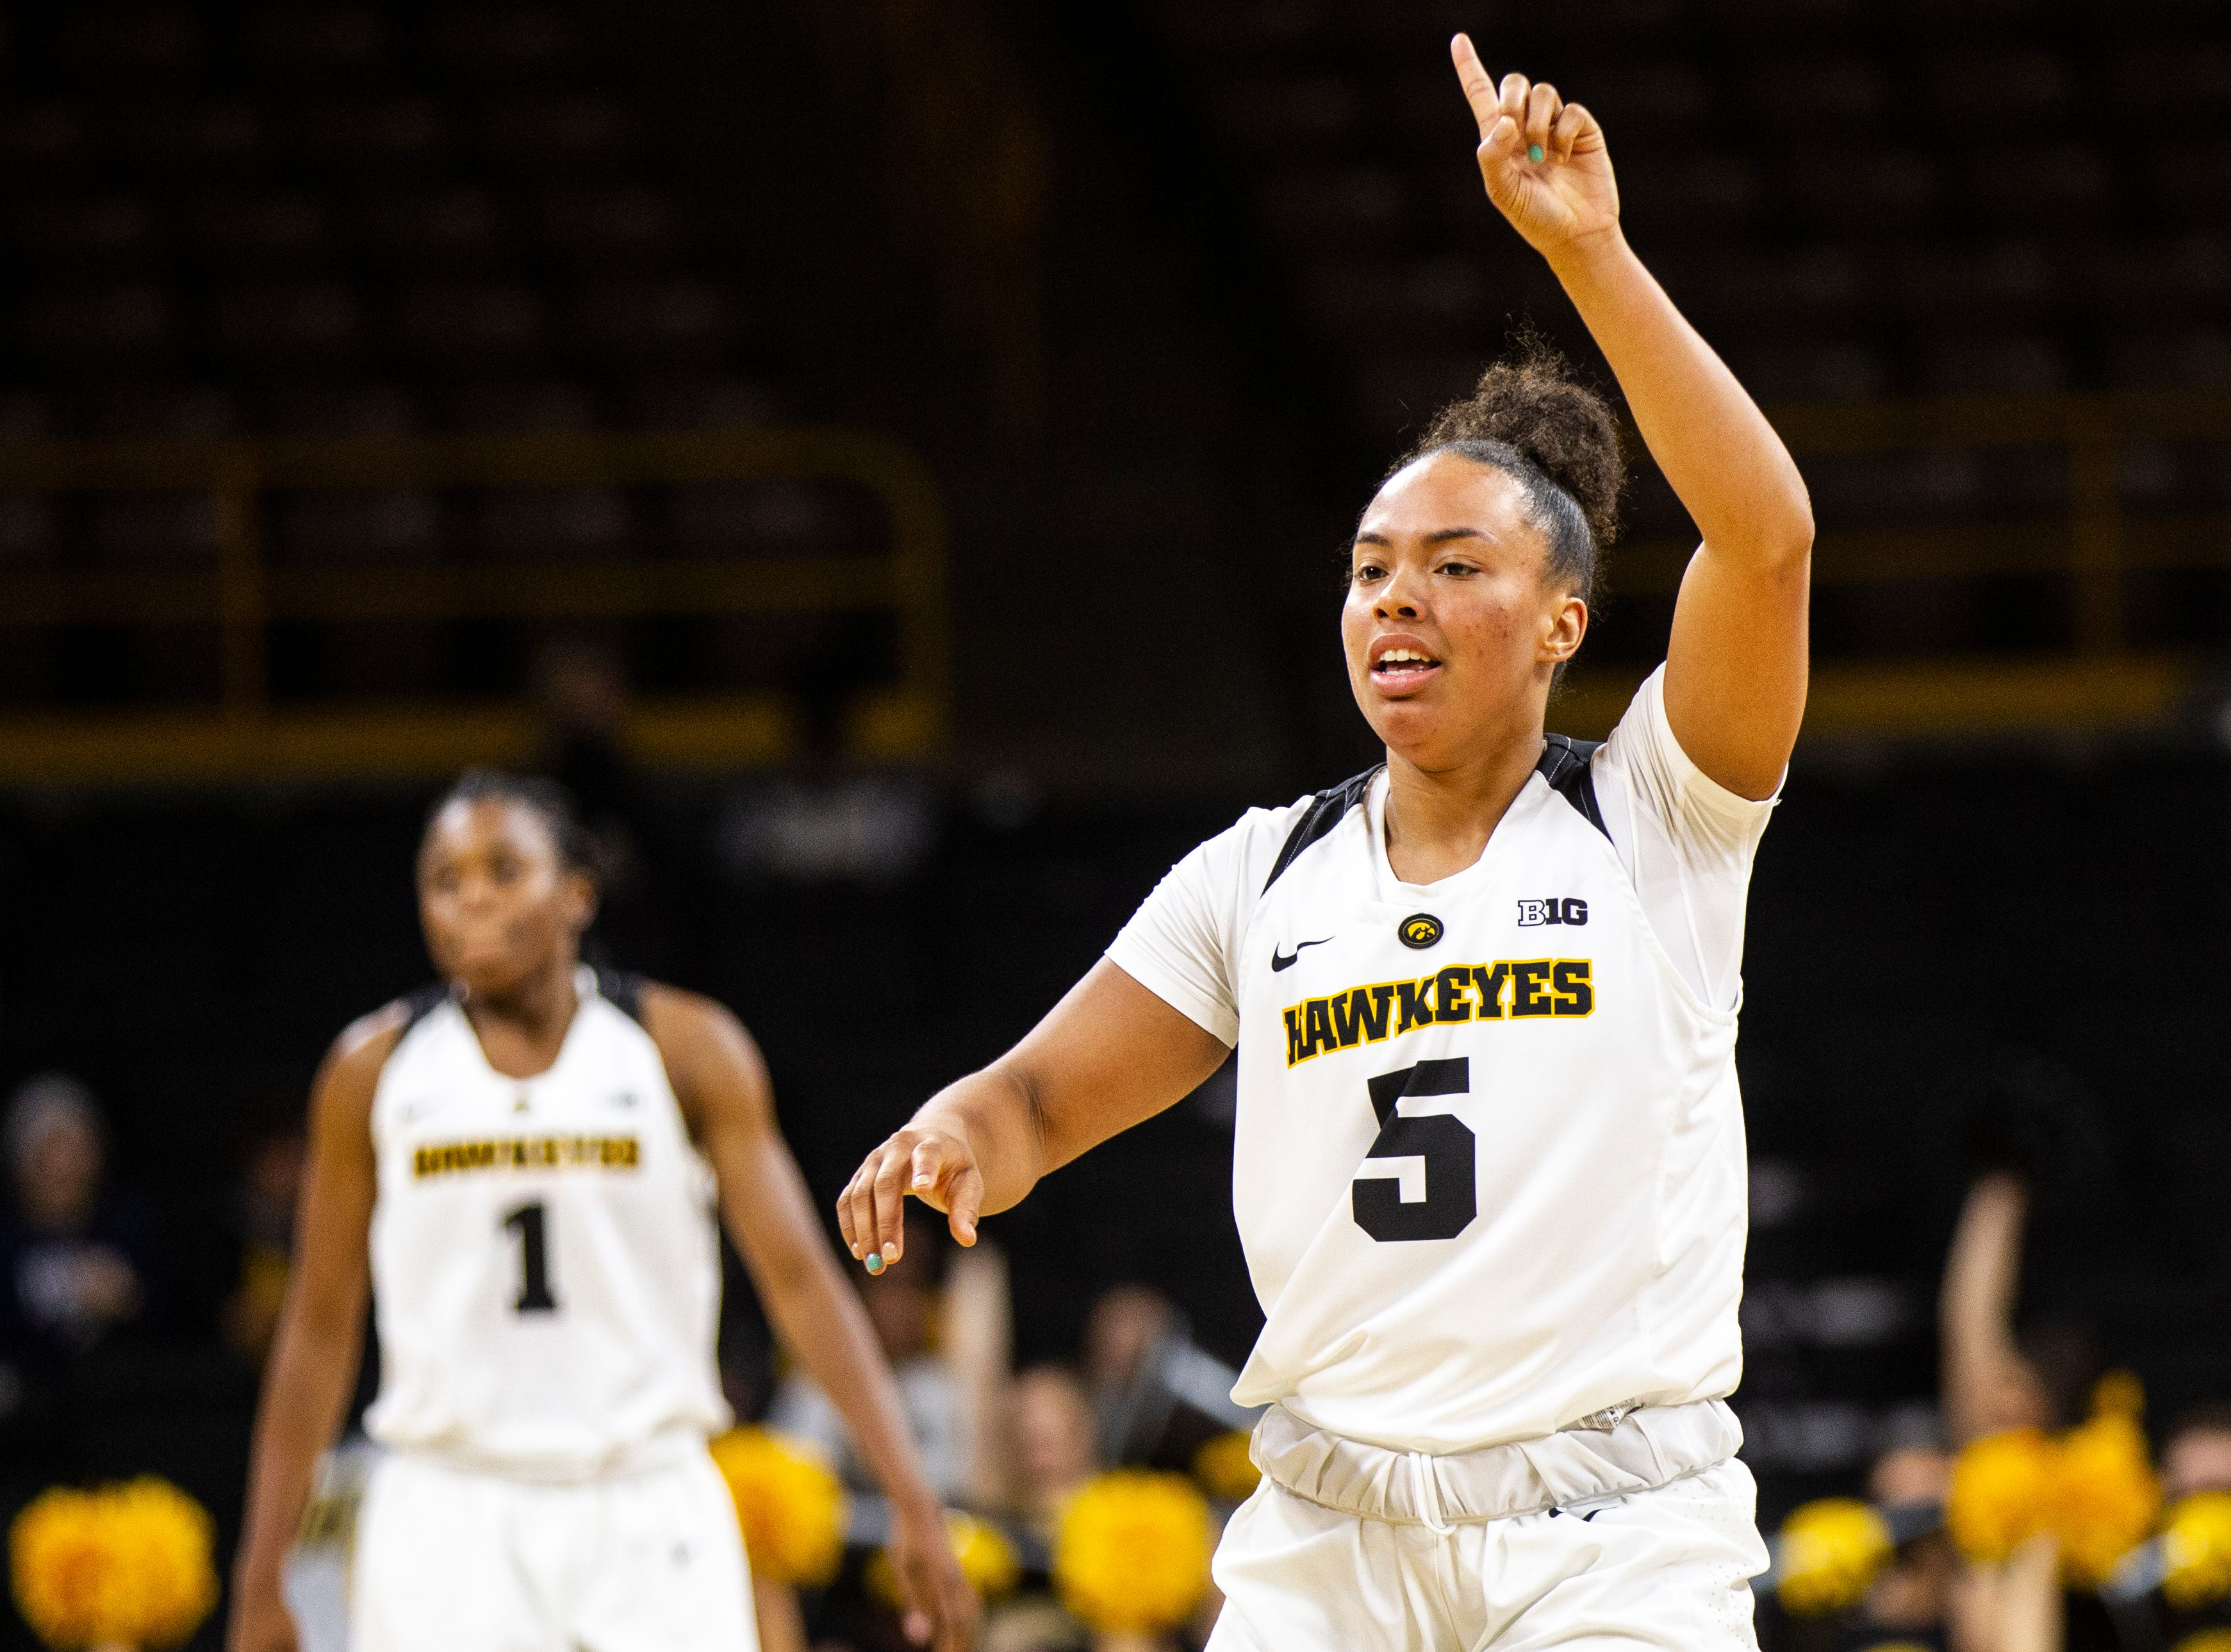 Iowa guard Alexis Sevillian (5) gestures after scoring during a women's basketball exhibition basketball game on Tuesday, Nov. 6, 2018, at Carver-Hawkeye Arena in Iowa City.